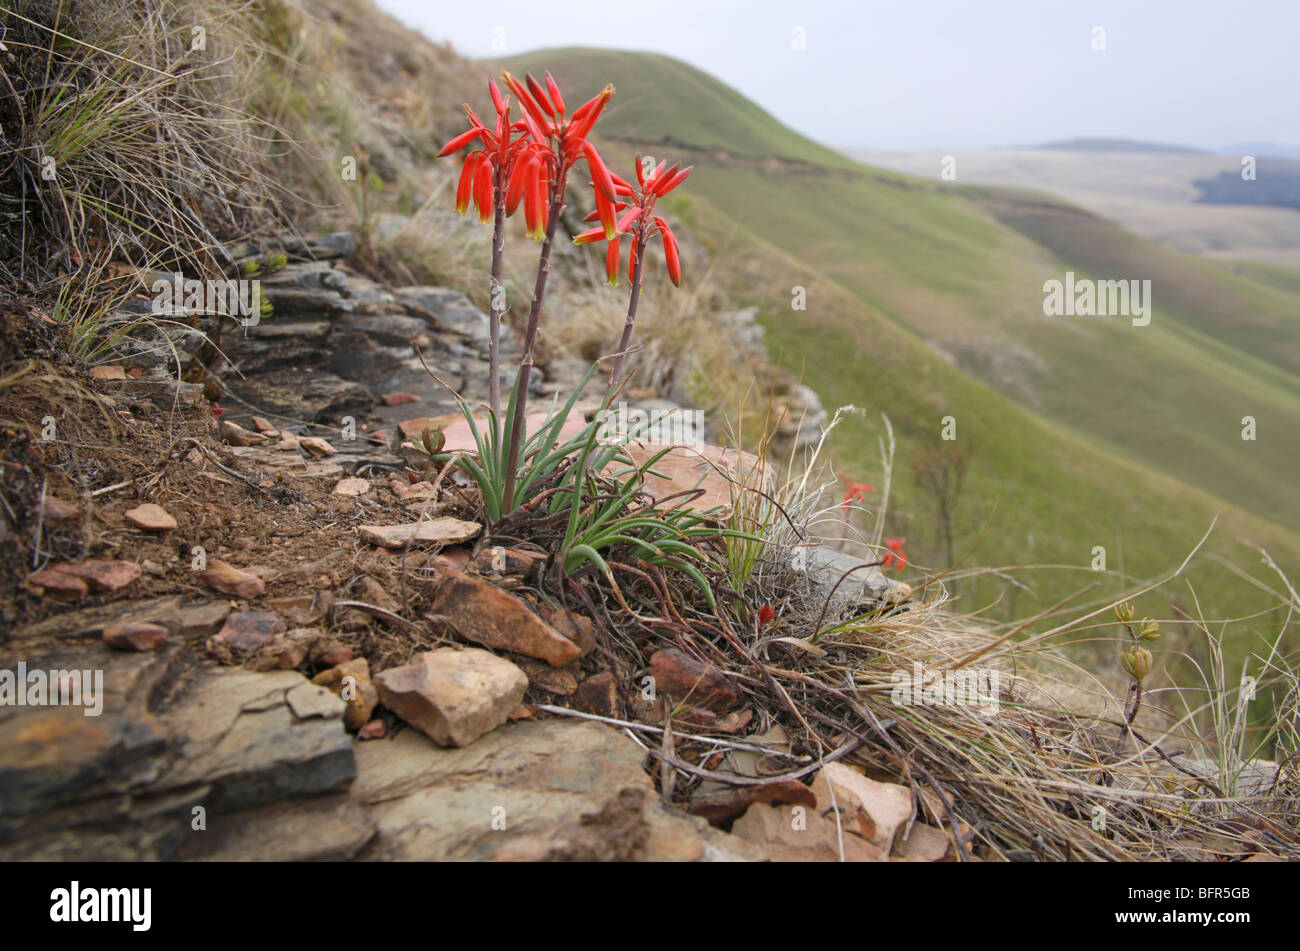 An unidentified Aloe plat growing on the slopes of Hartebeestvlakte near Sabie in the Transvaal Drakensberg - Stock Image